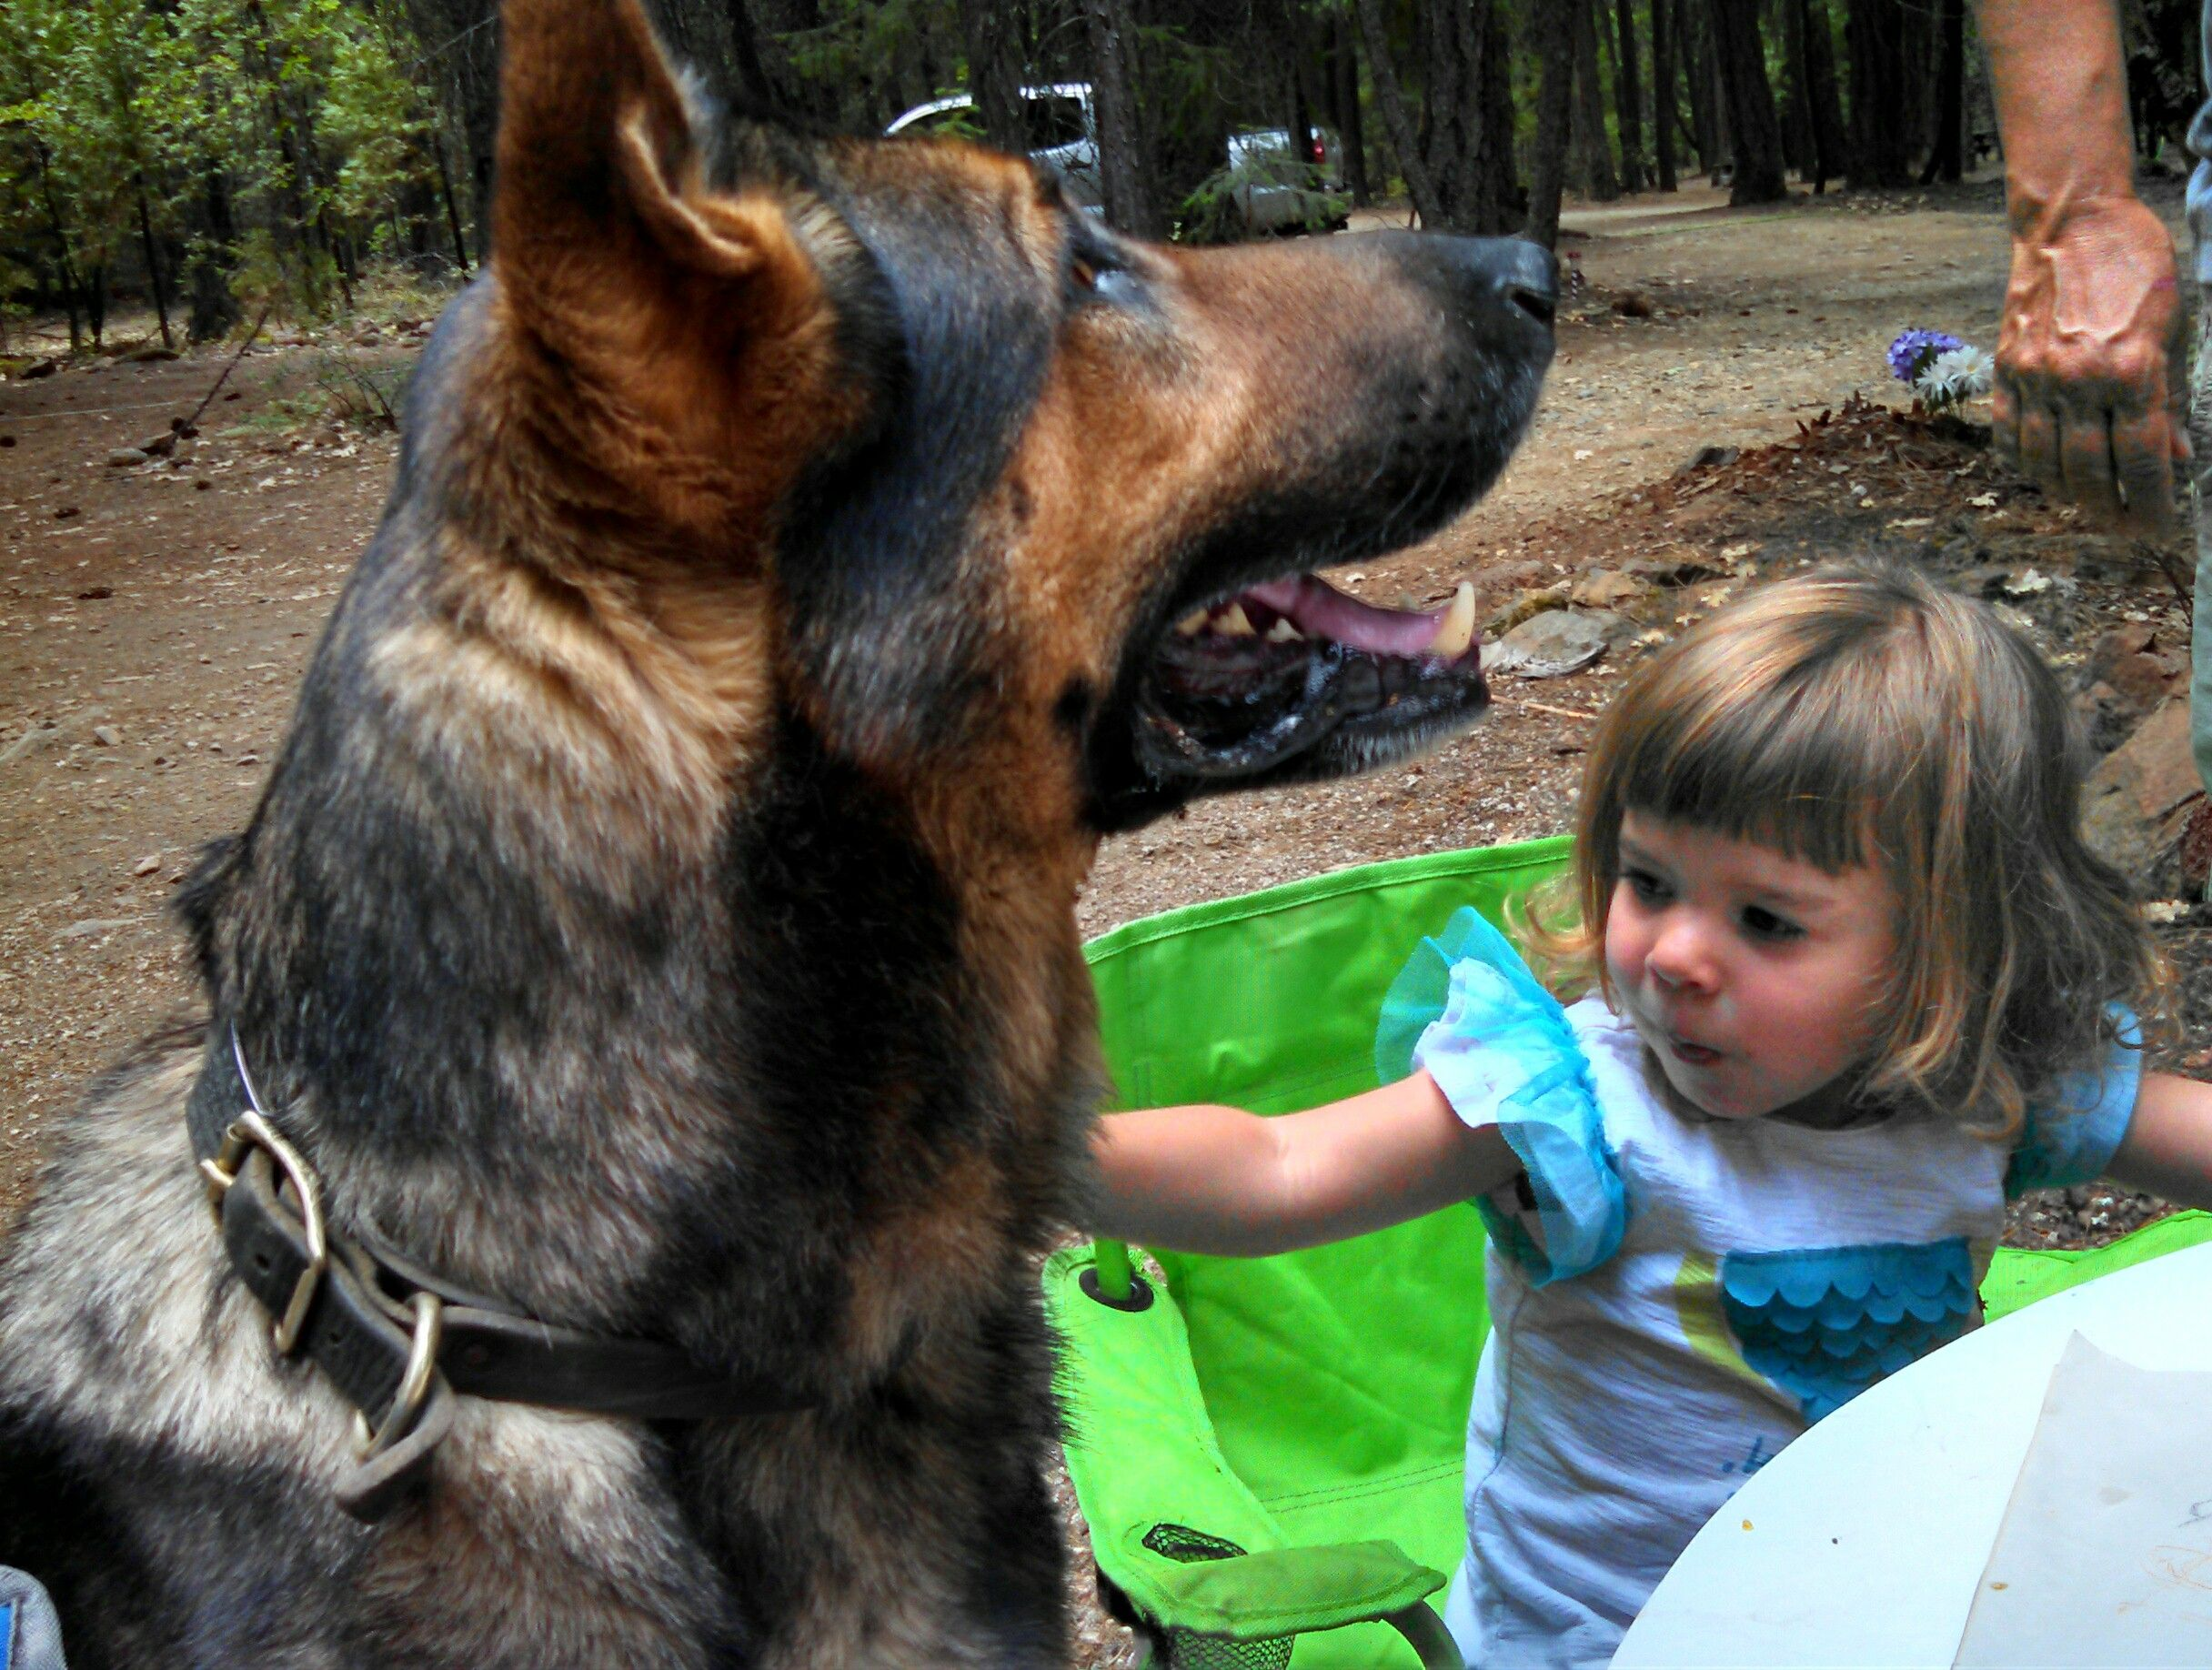 Socialization it's a buzzword in the dog world. But what